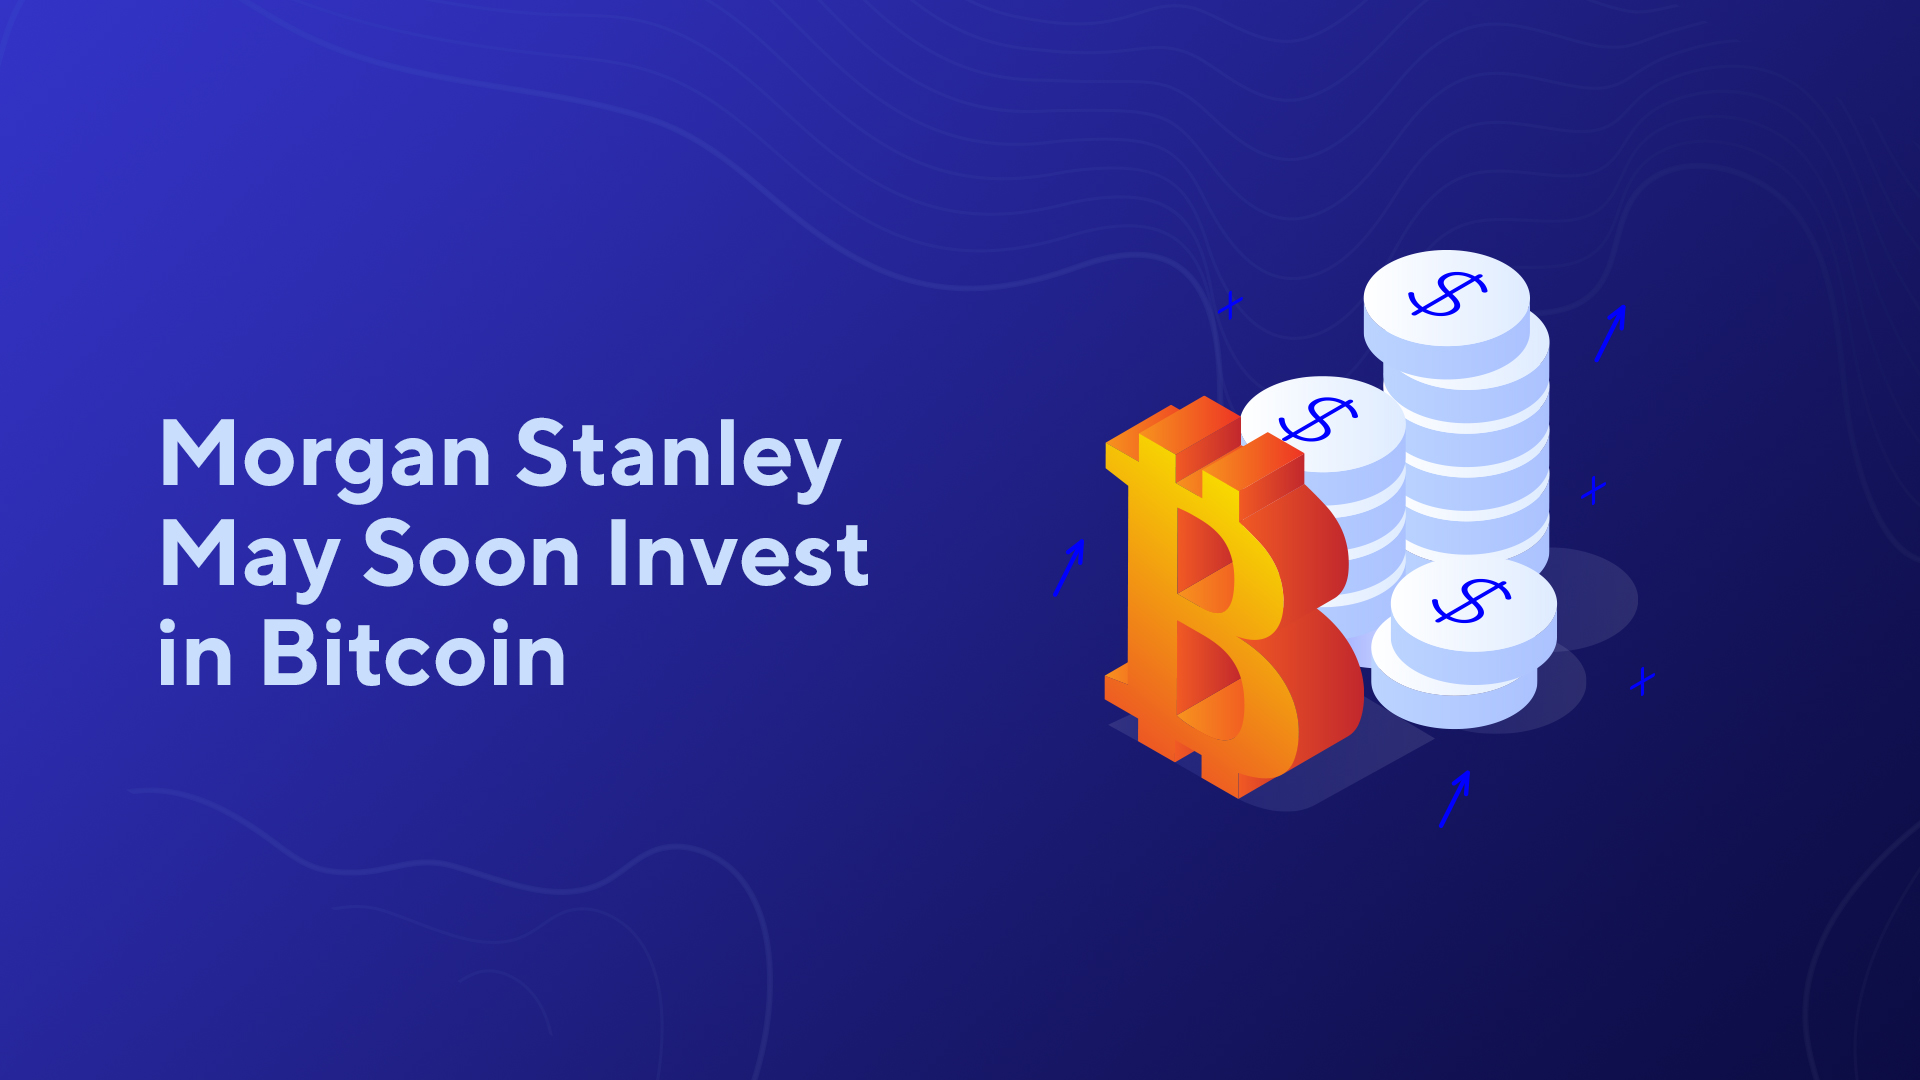 Morgan Stanley May Soon Invest in Bitcoin